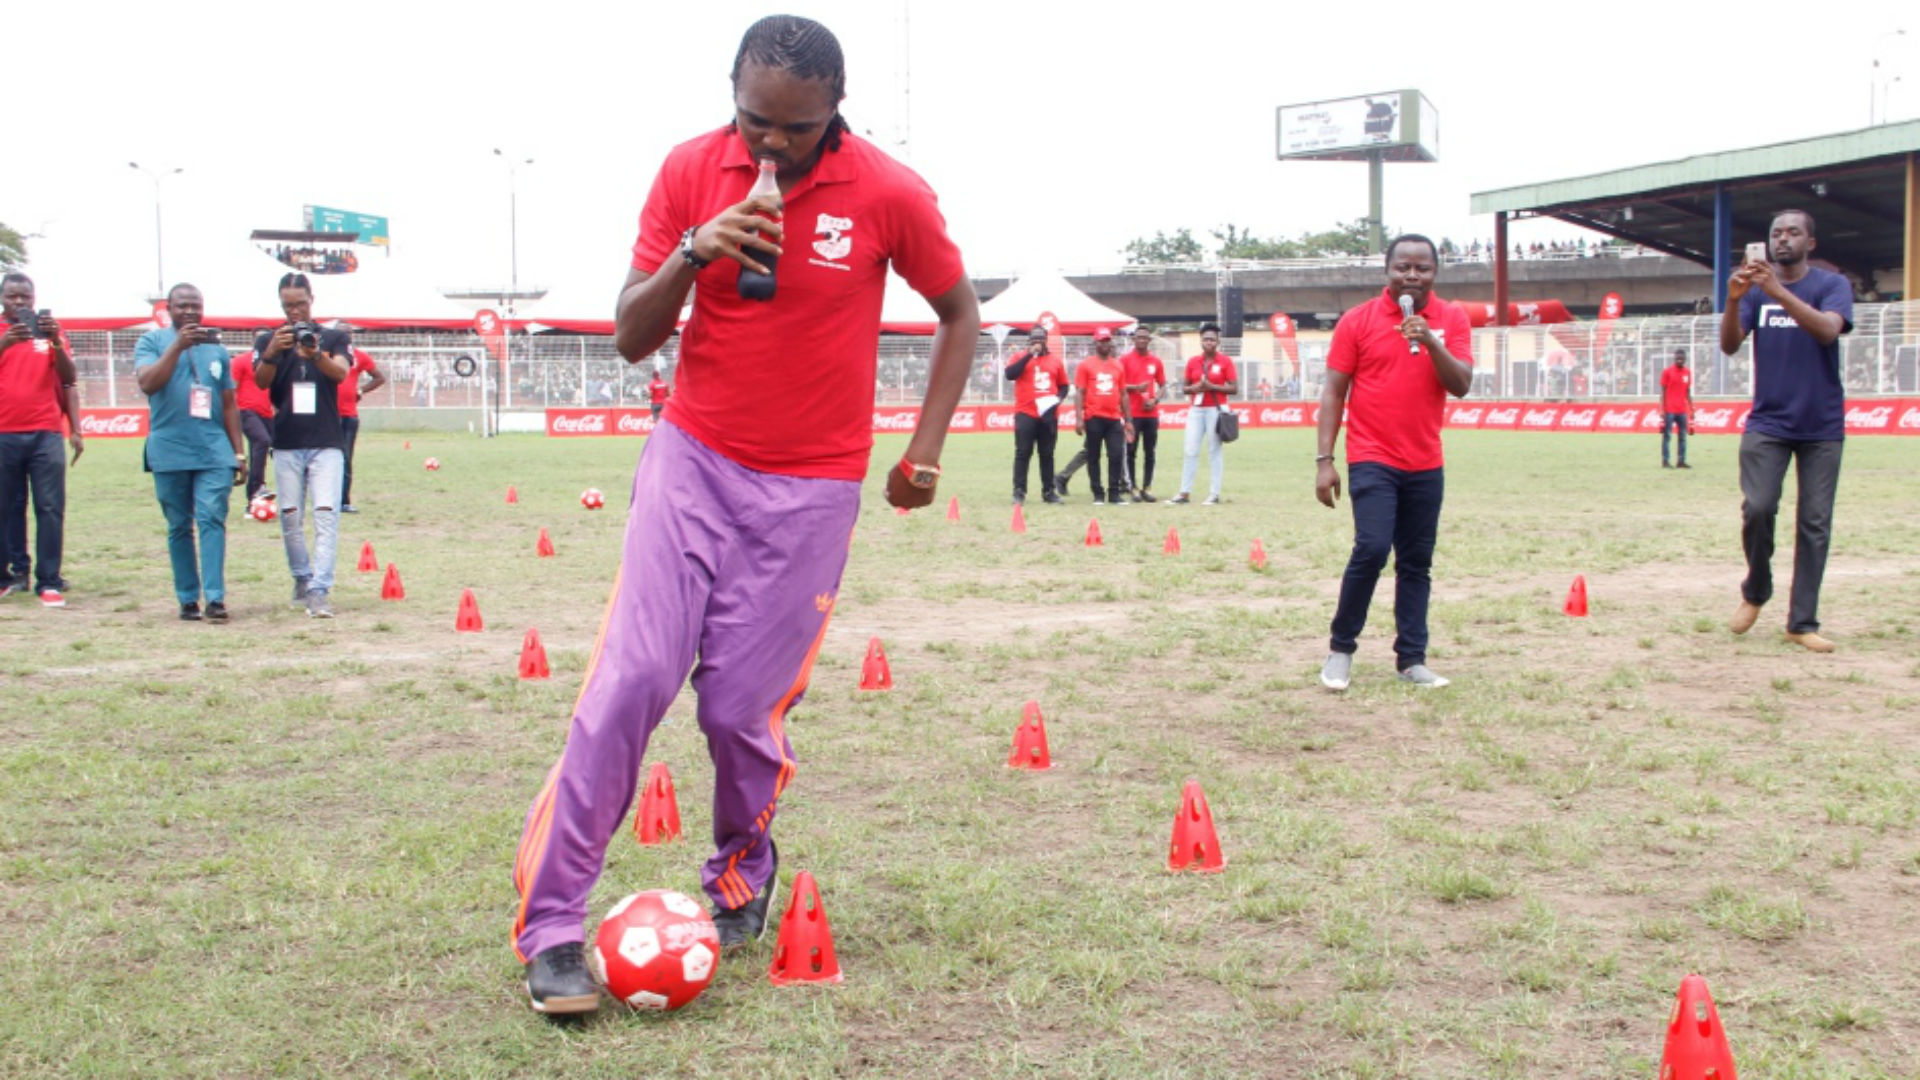 Kanu Nwankwo showing skills during Dare The COPA legends Stunt